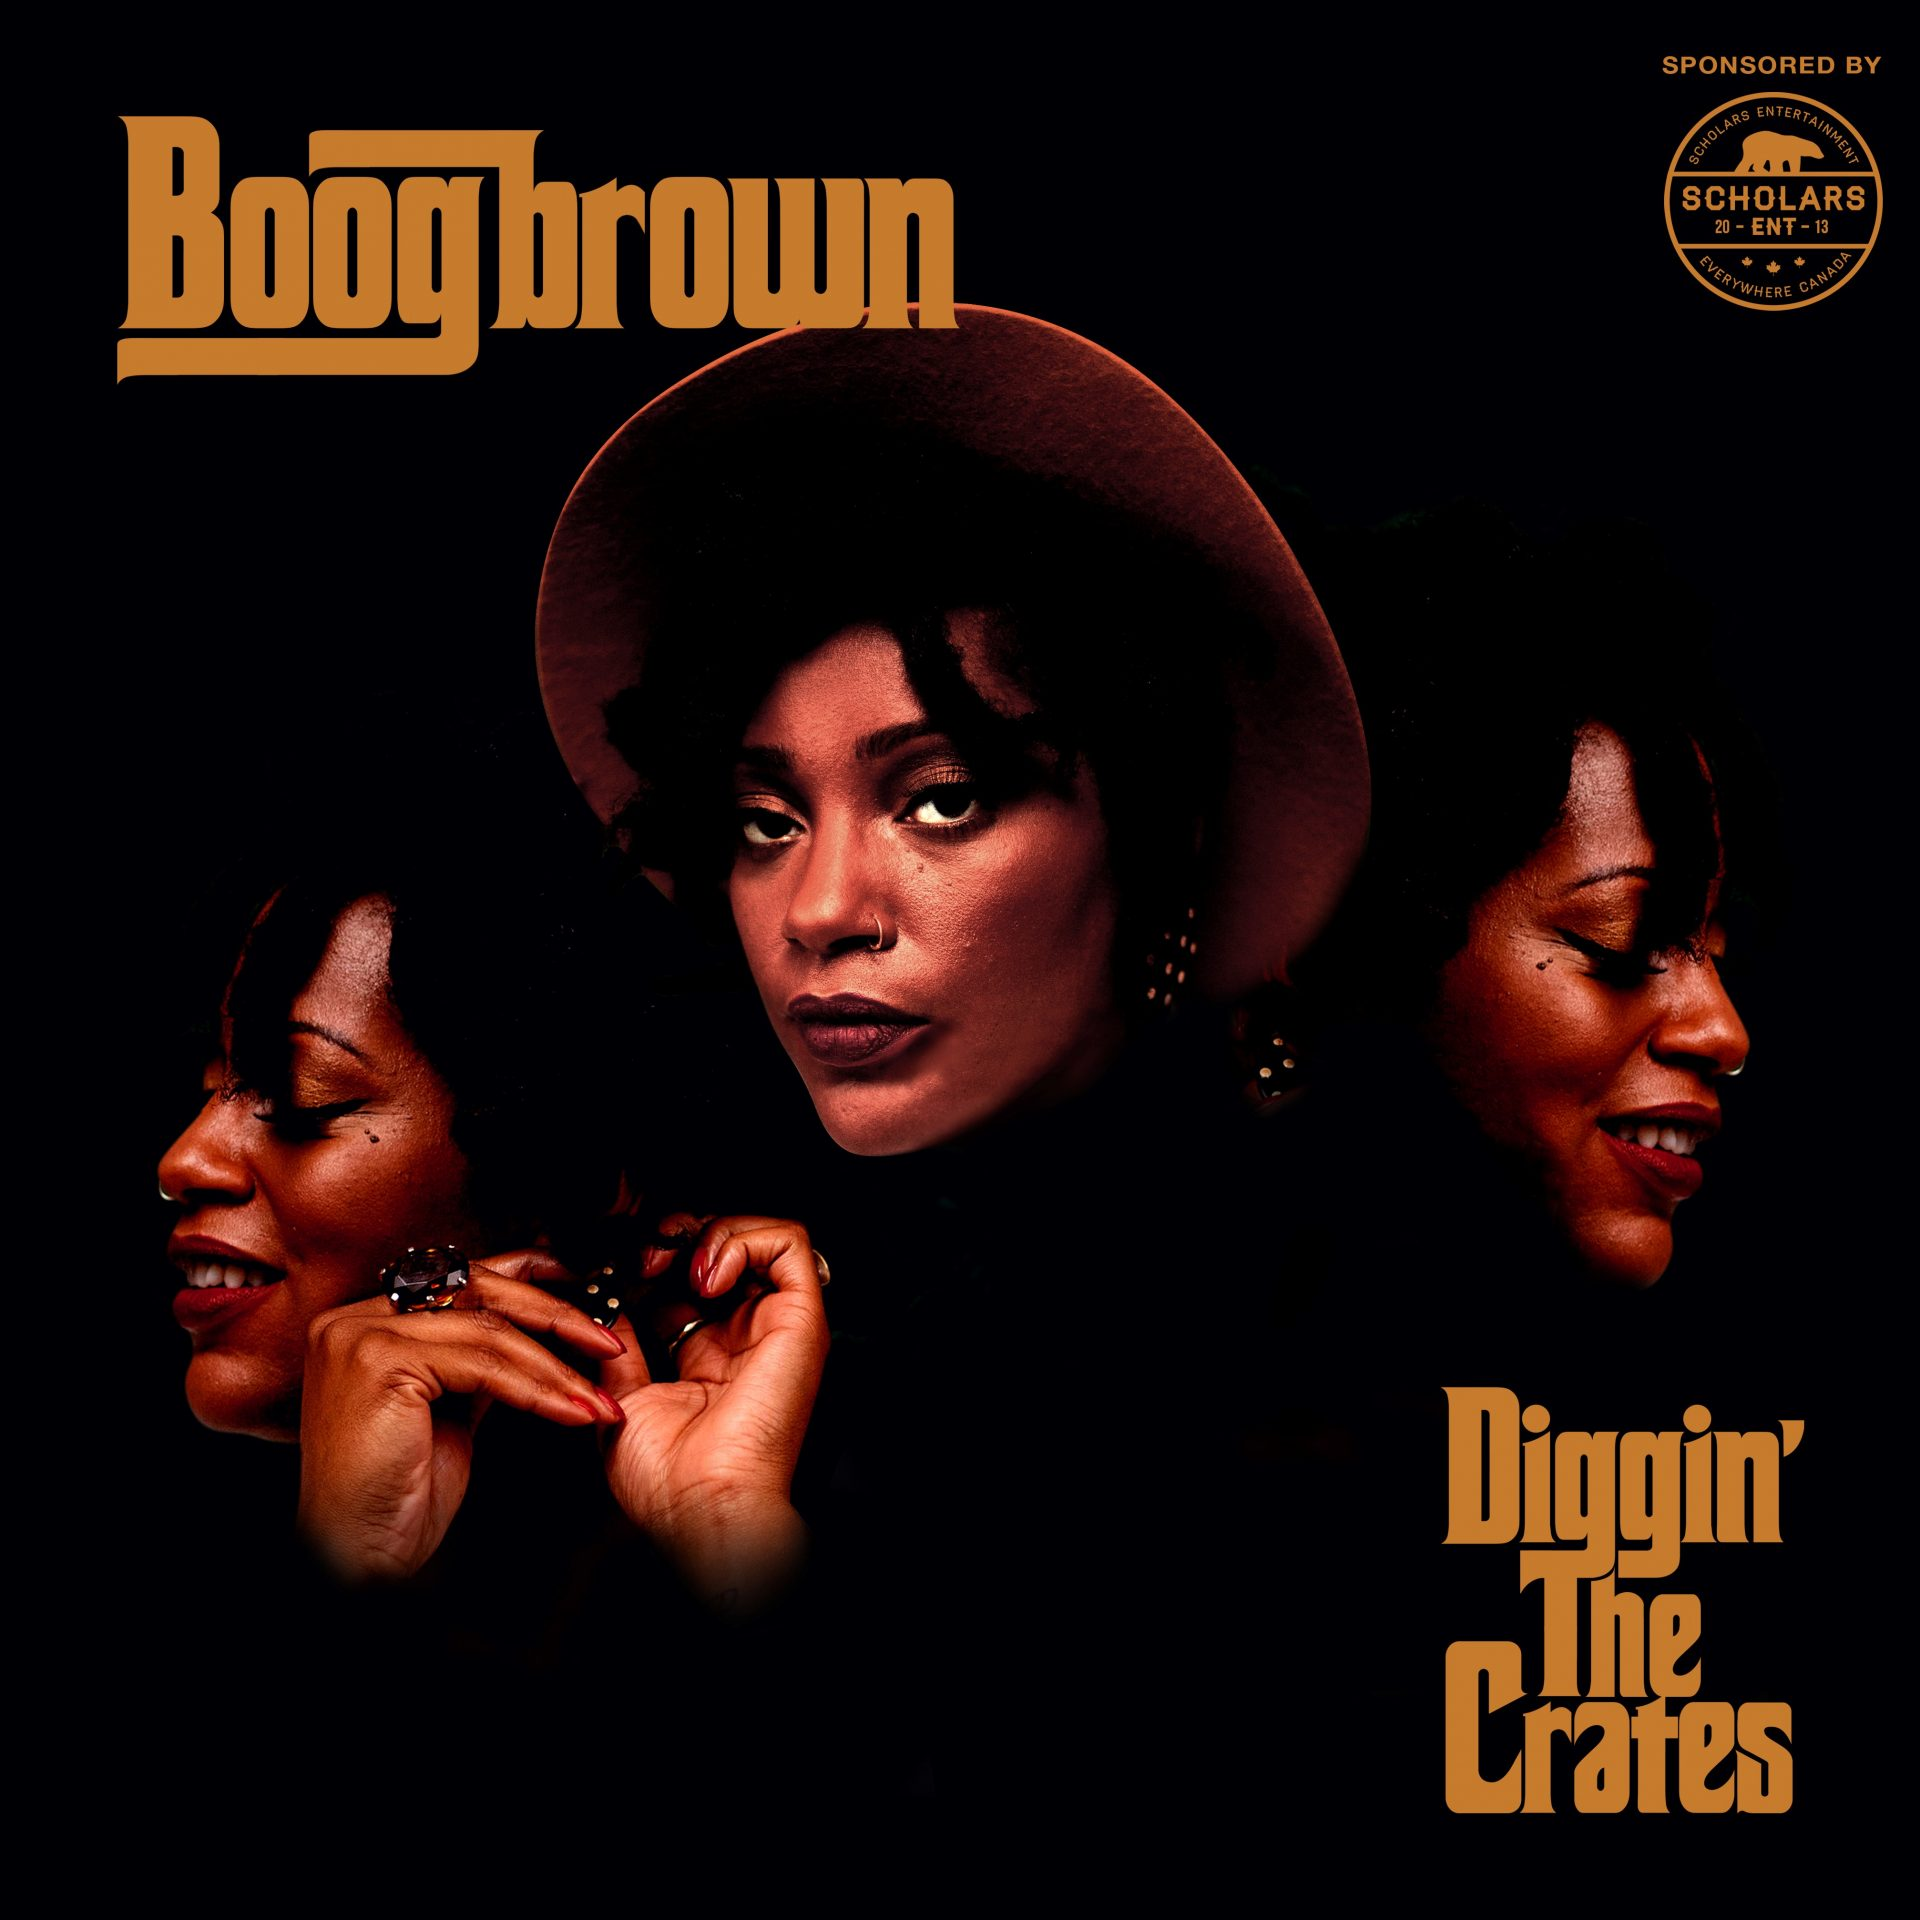 Episode 5 of Diggin' The Crates: Boog Brown